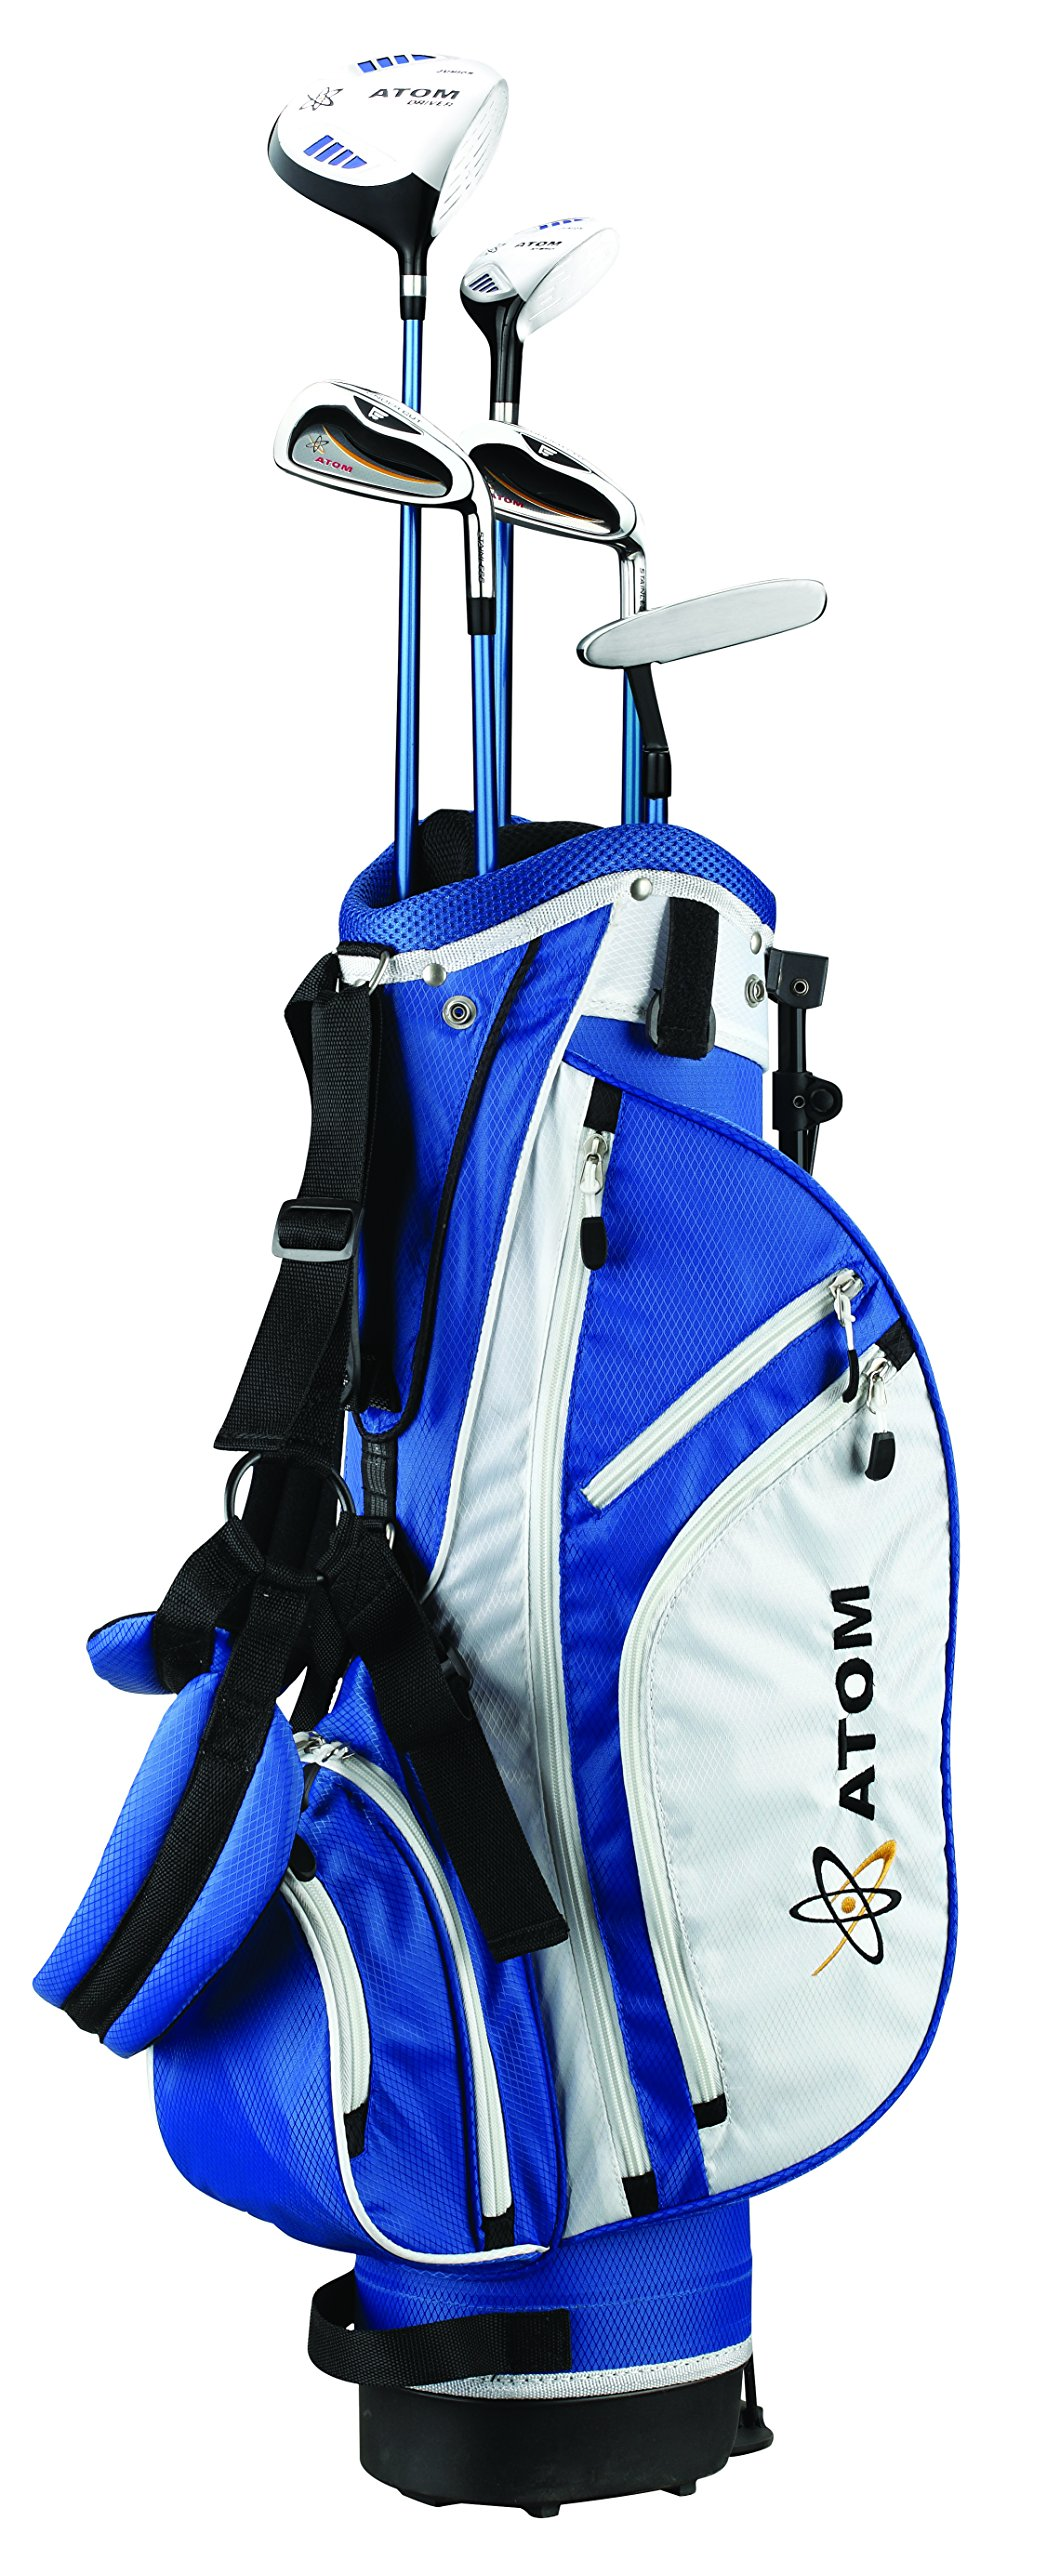 Founders Club Atom Complete Junior Golf Set, Youth 54-63'' Tall, Ages 10-13, Right-Handed